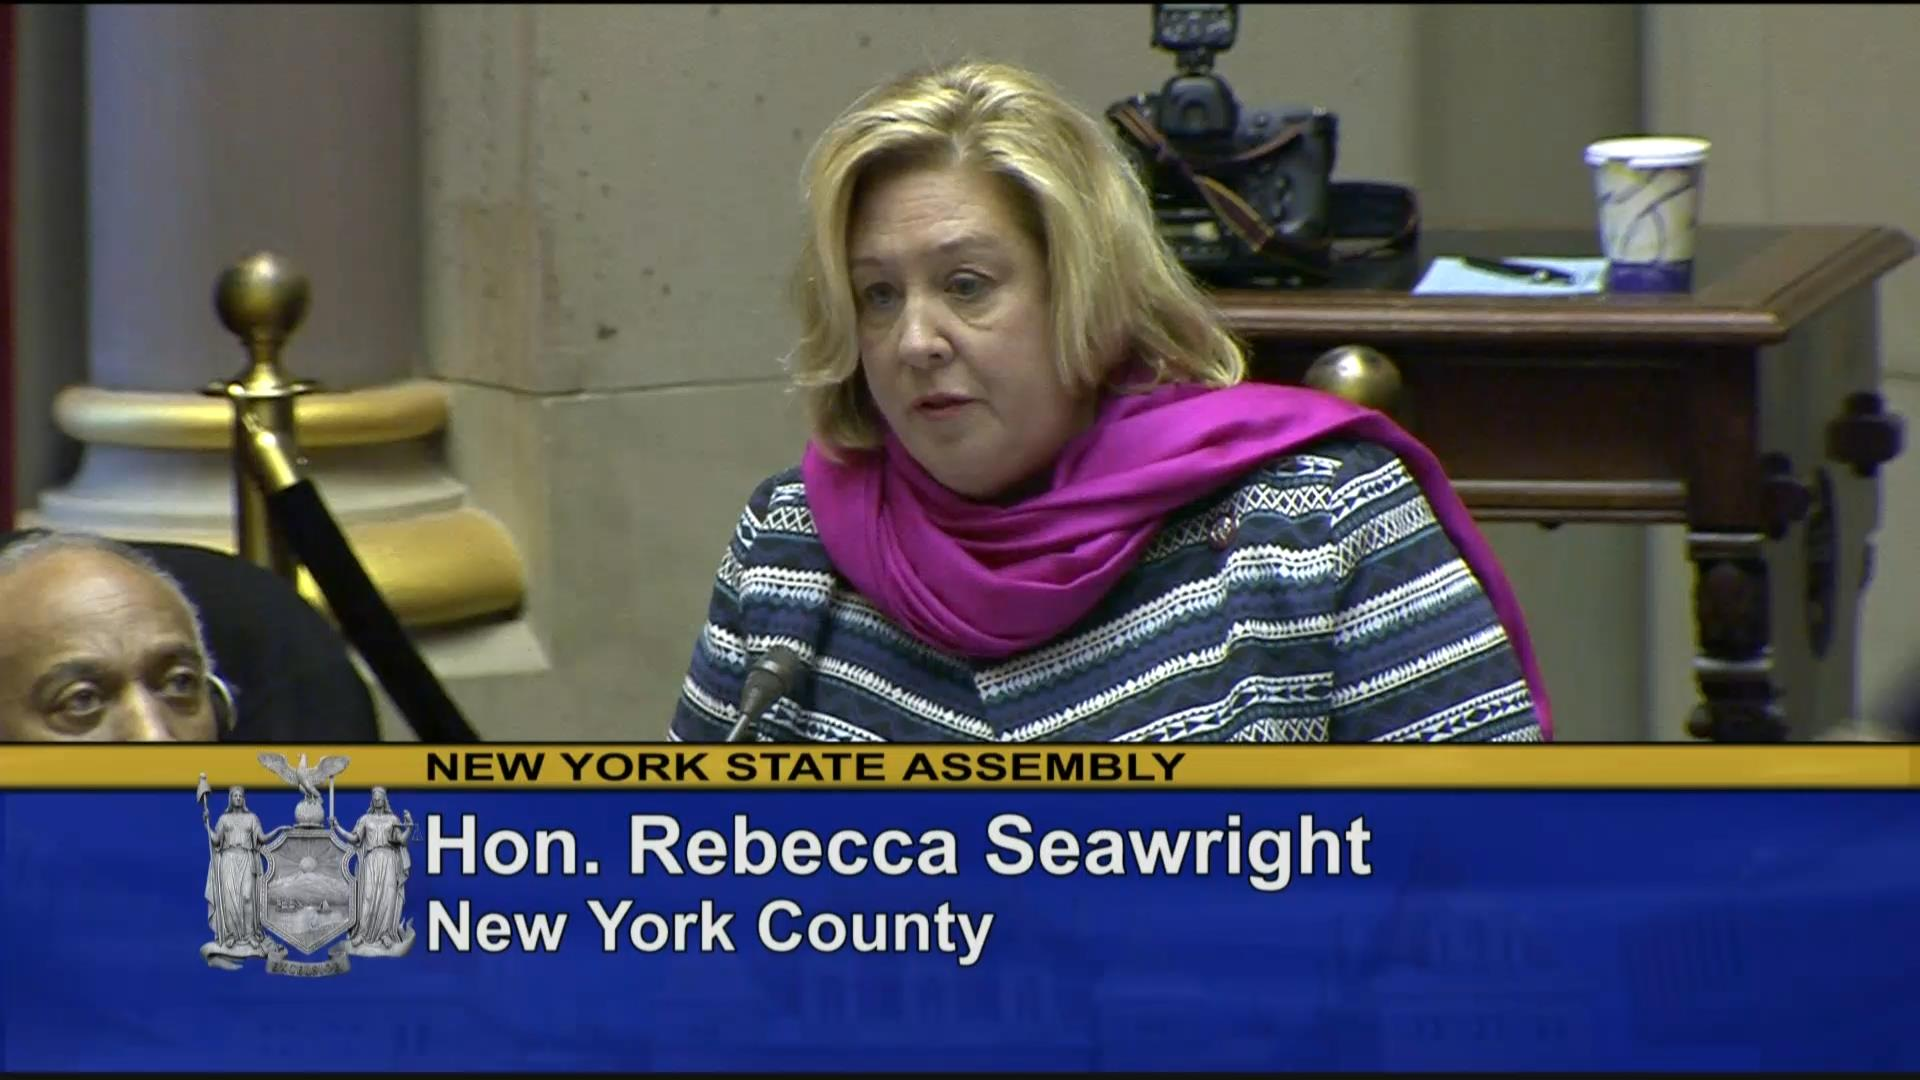 Seawright Works to Ensure Equal Rights for Women in NYS